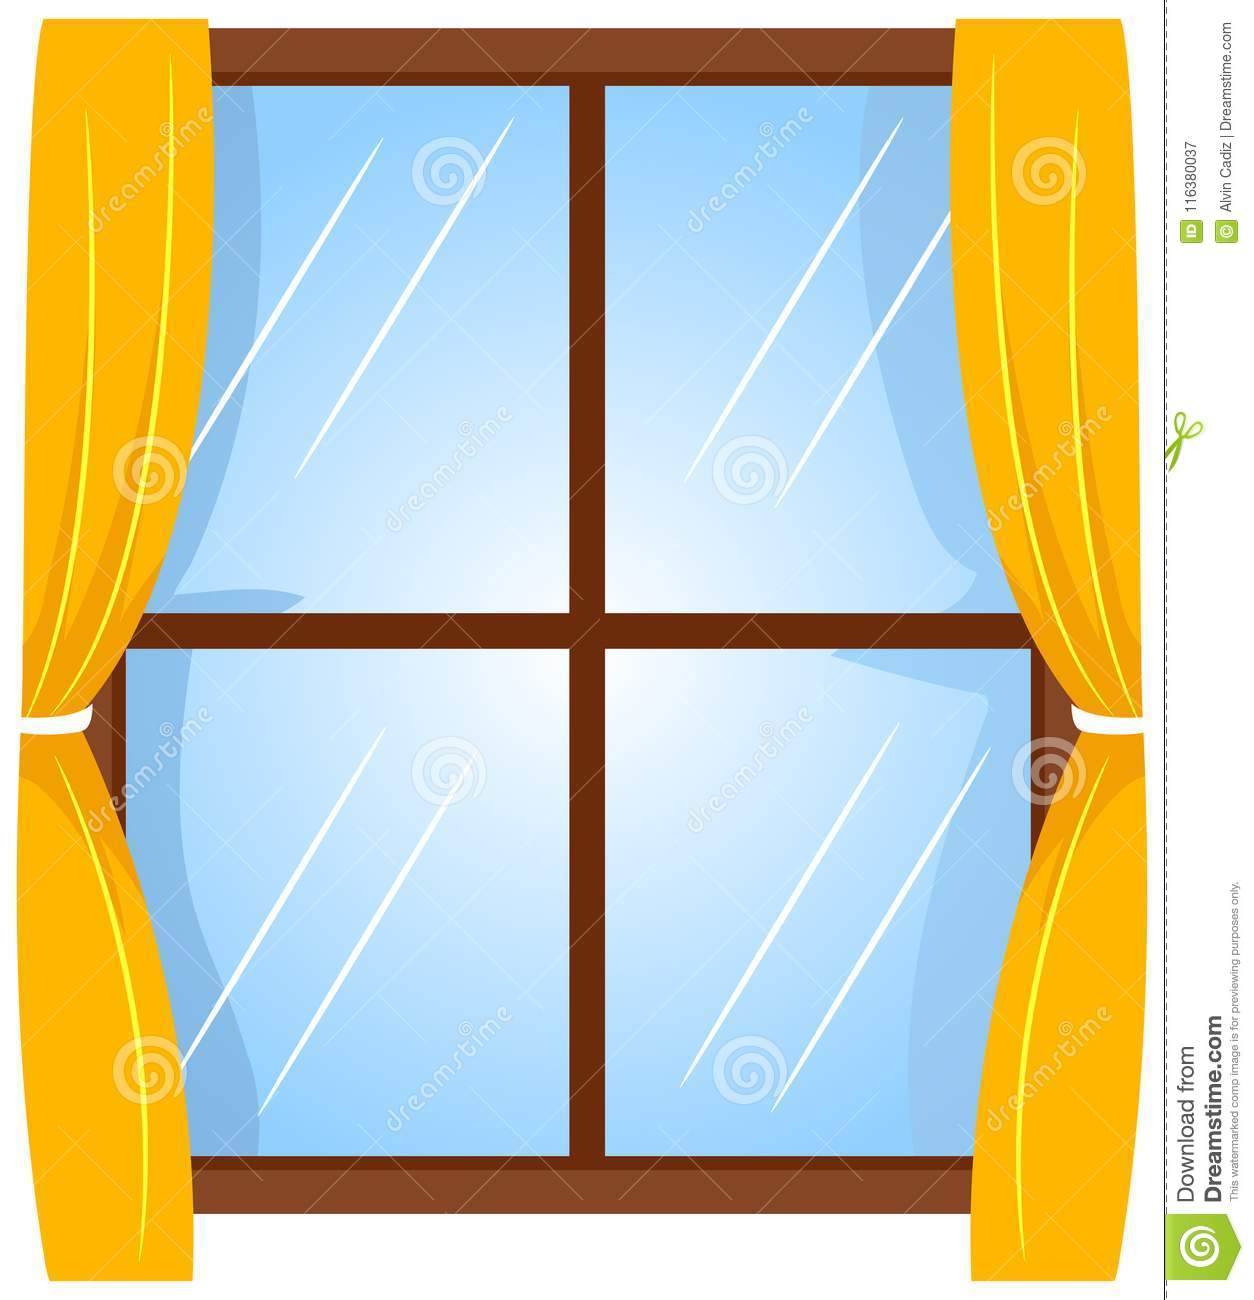 Vector Illustration Of Window With Curtain Stock Vector